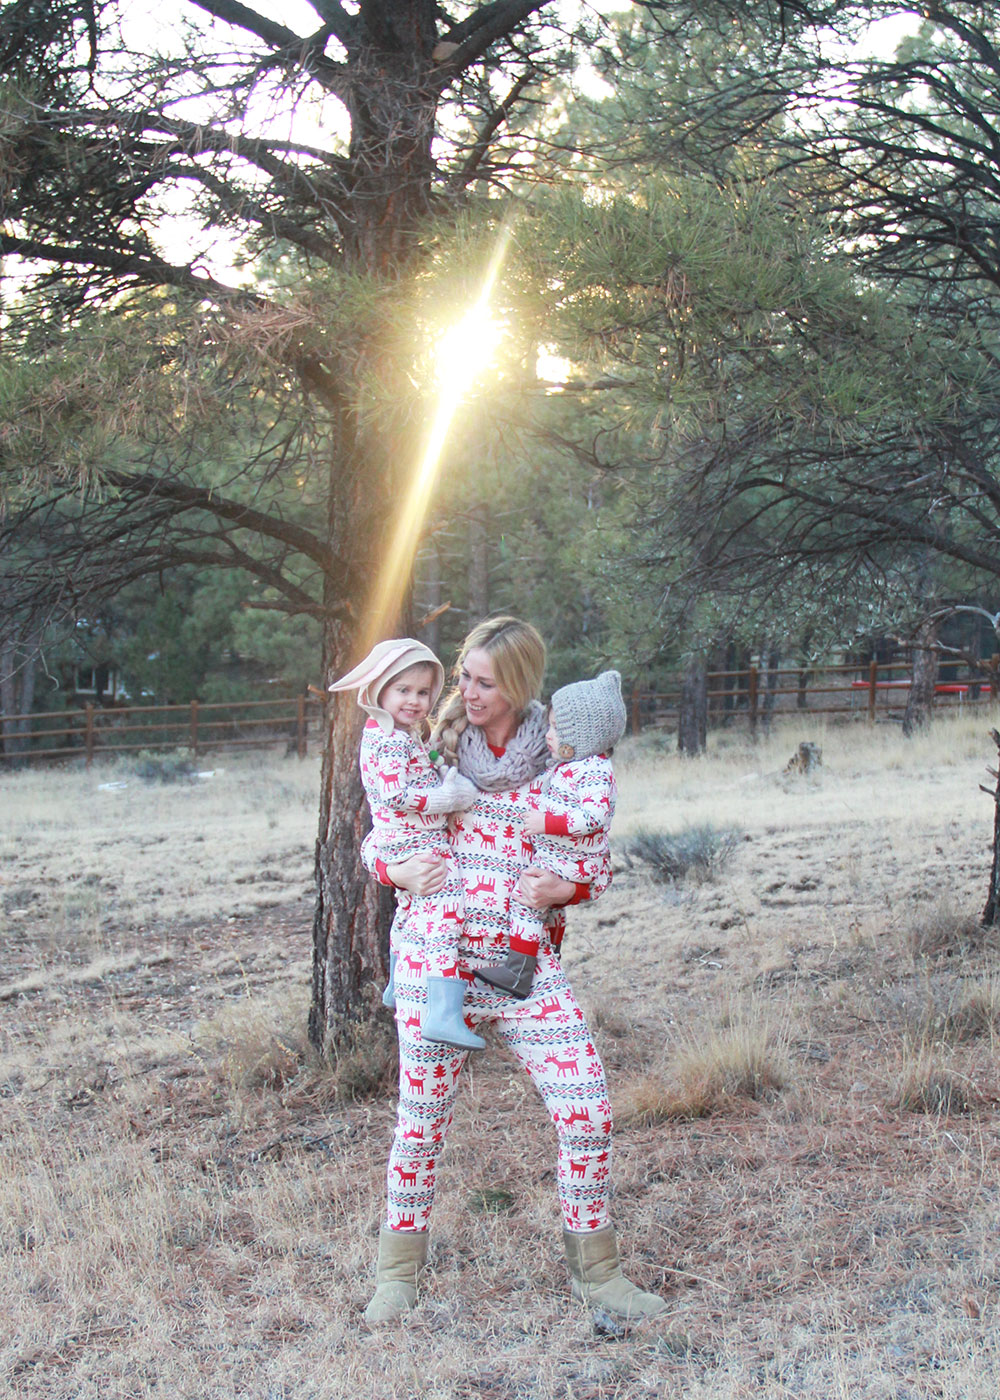 baby wrangling and matching jammies | thelovedesignedlife.com